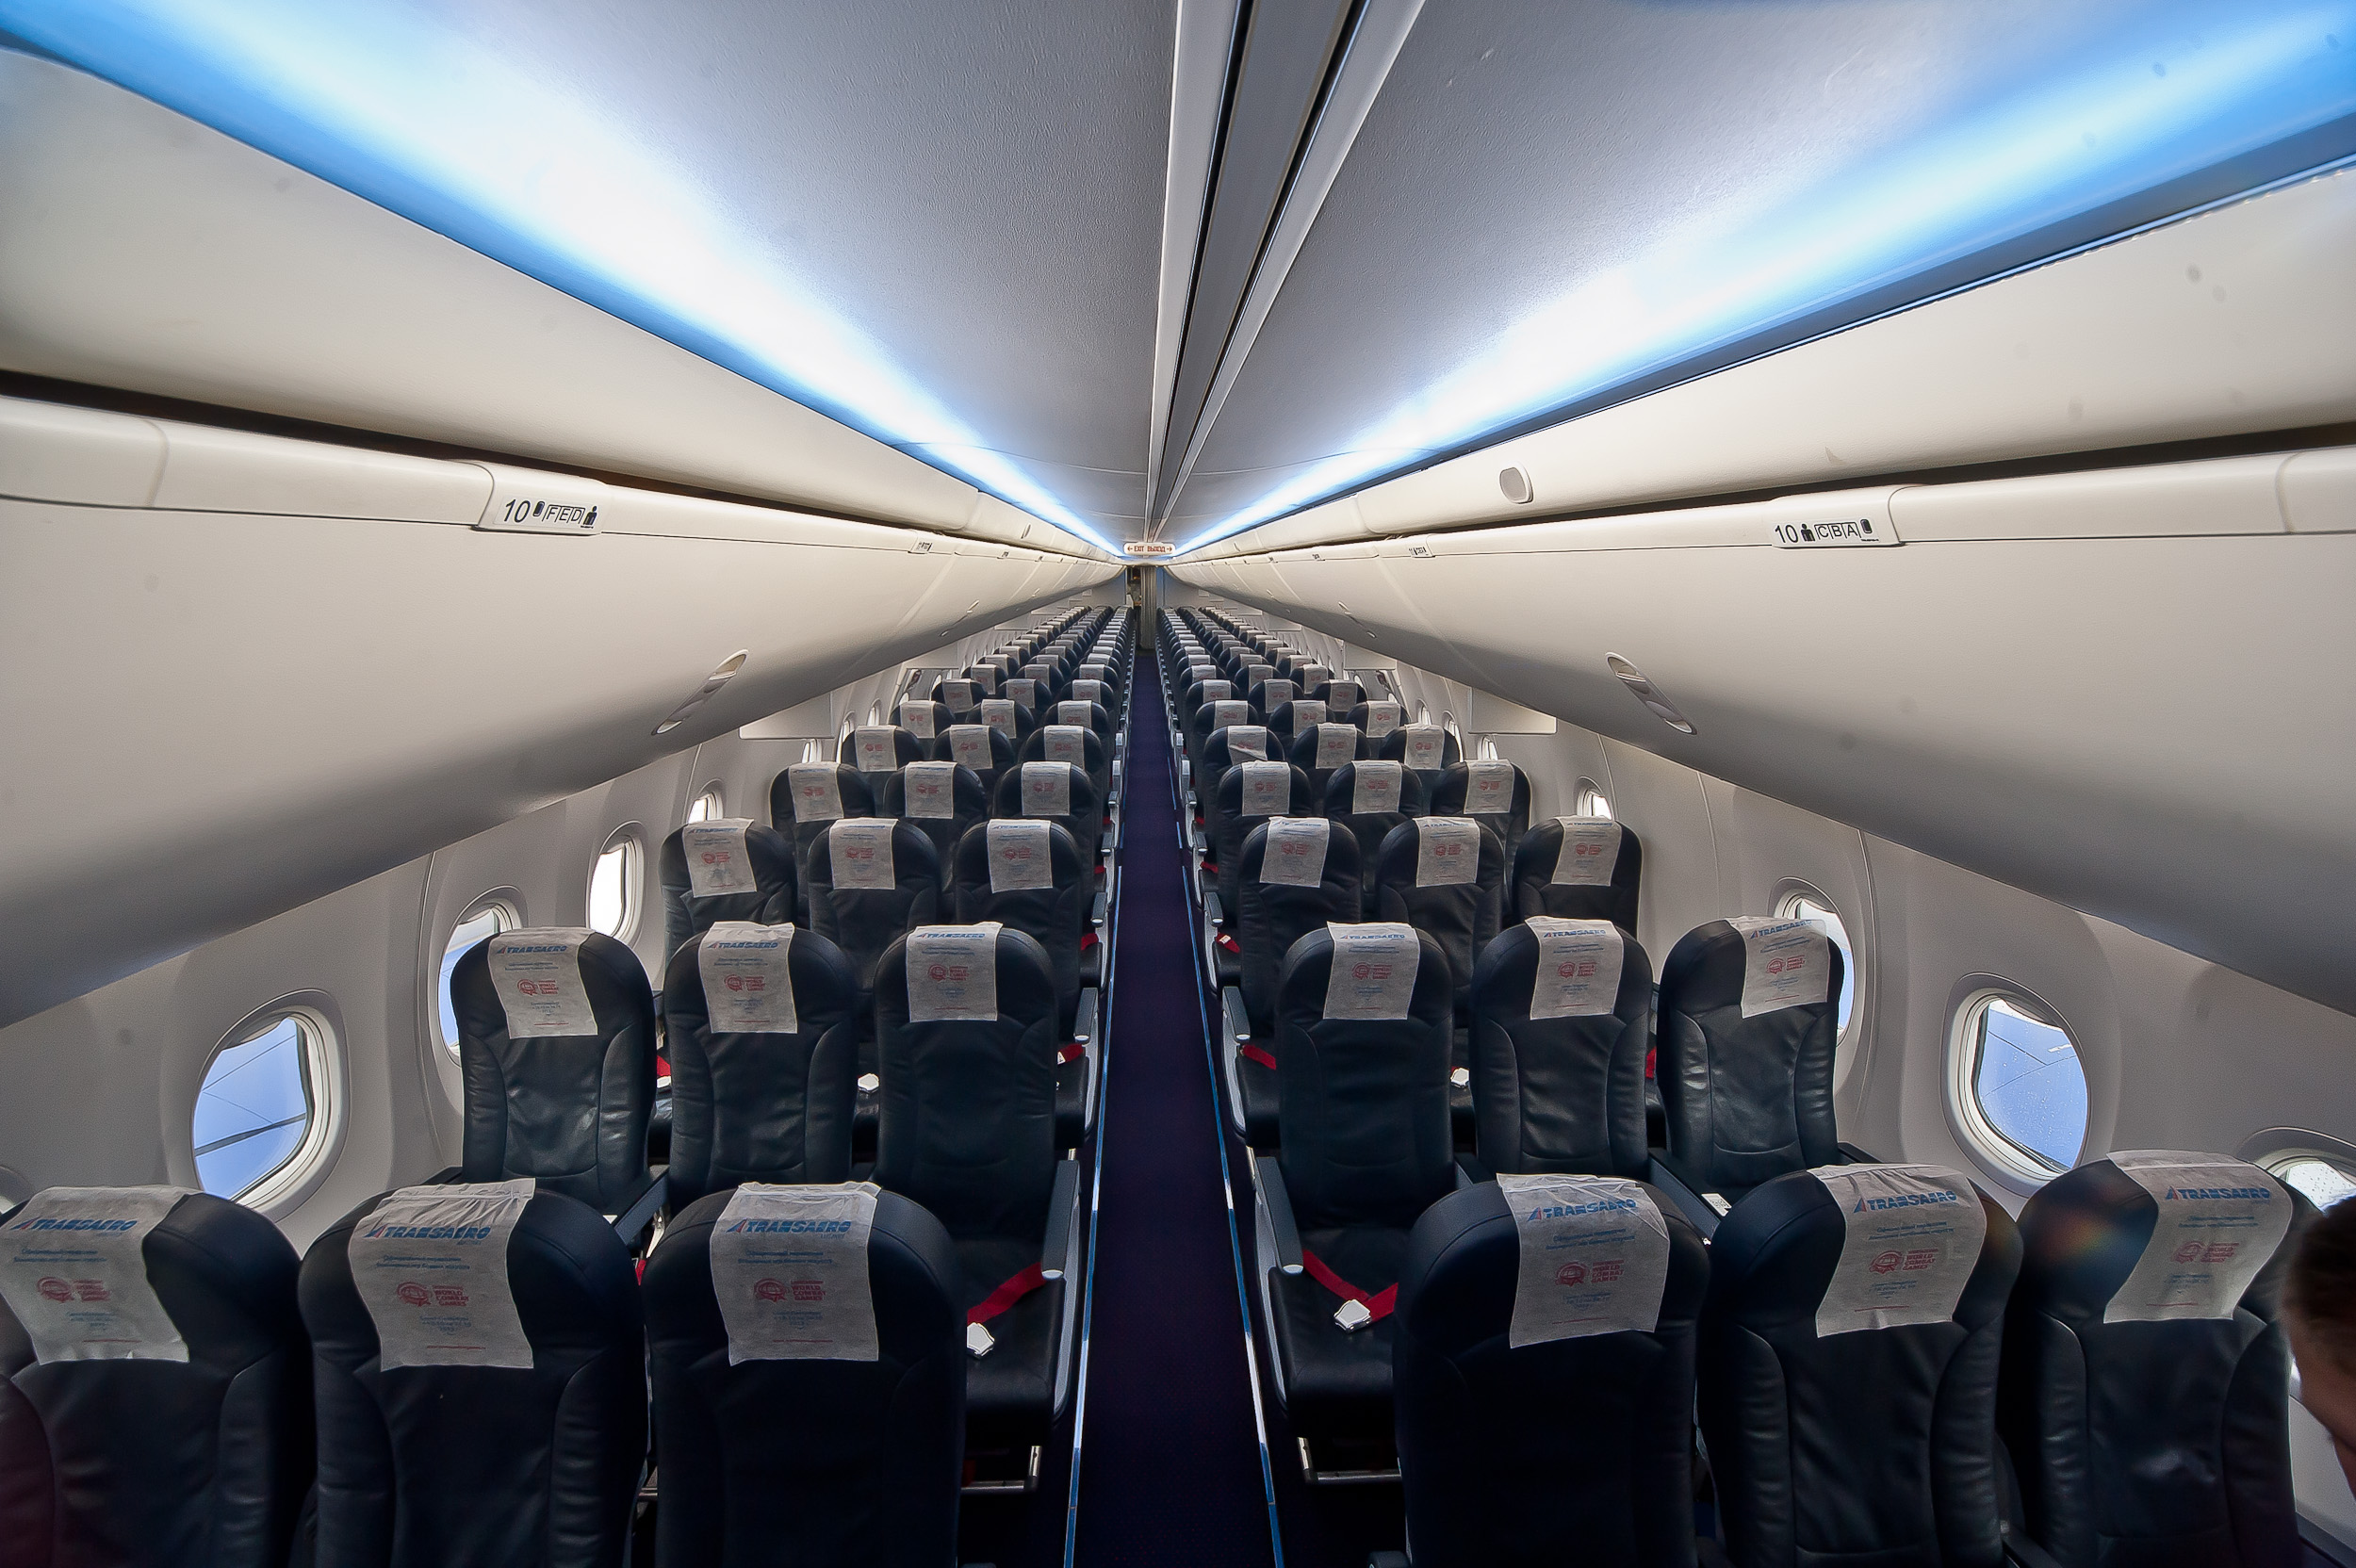 Boeing 737 800 aircraft inside image - Economy Class